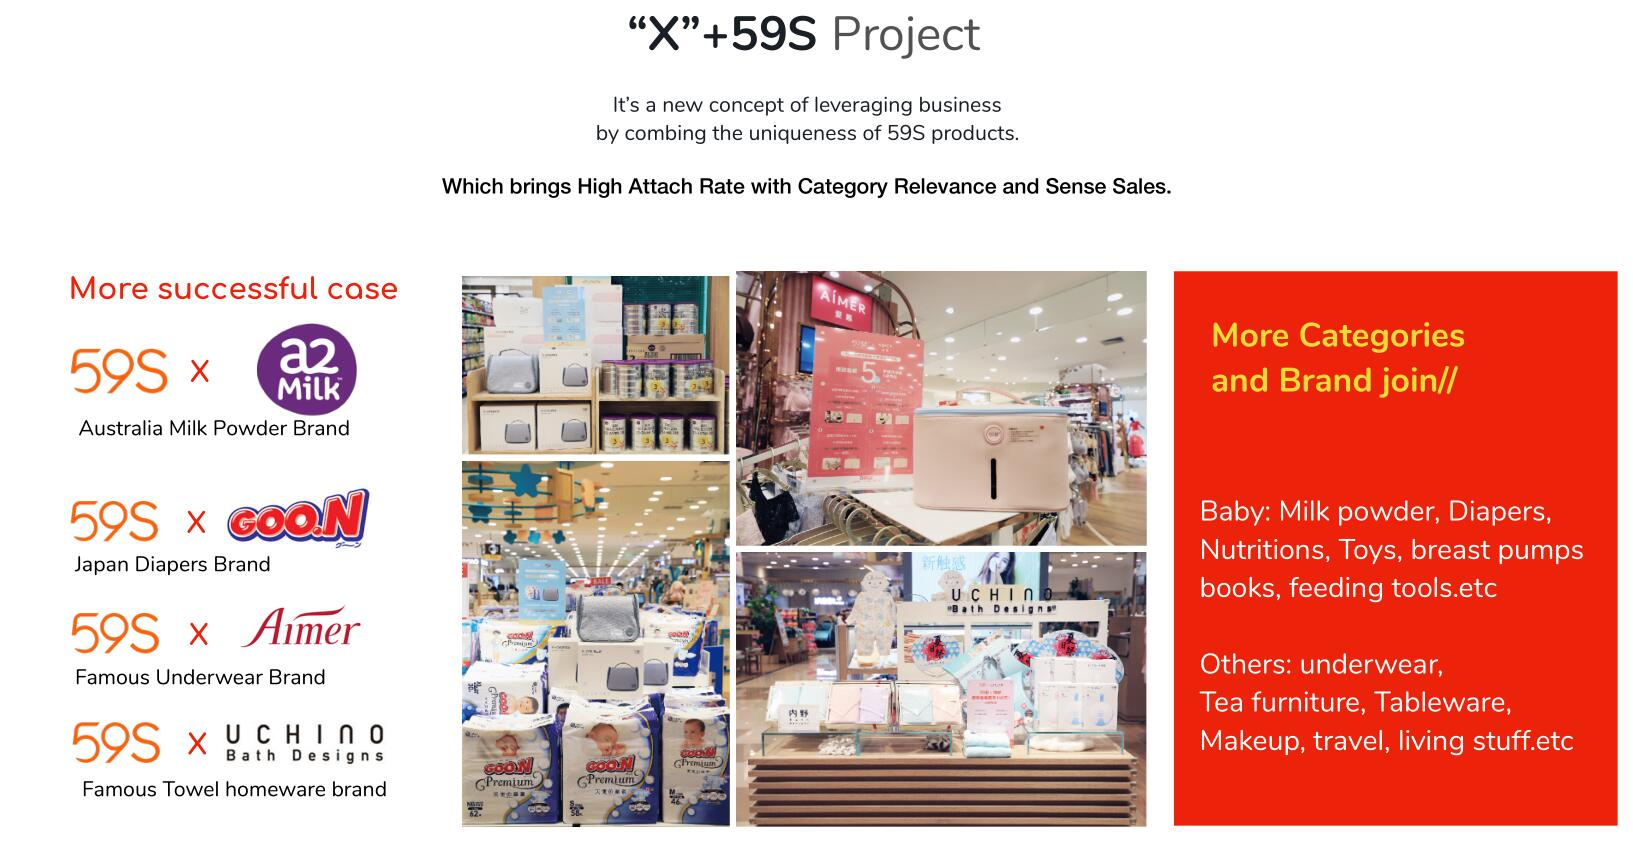 59S Partnership X+ project